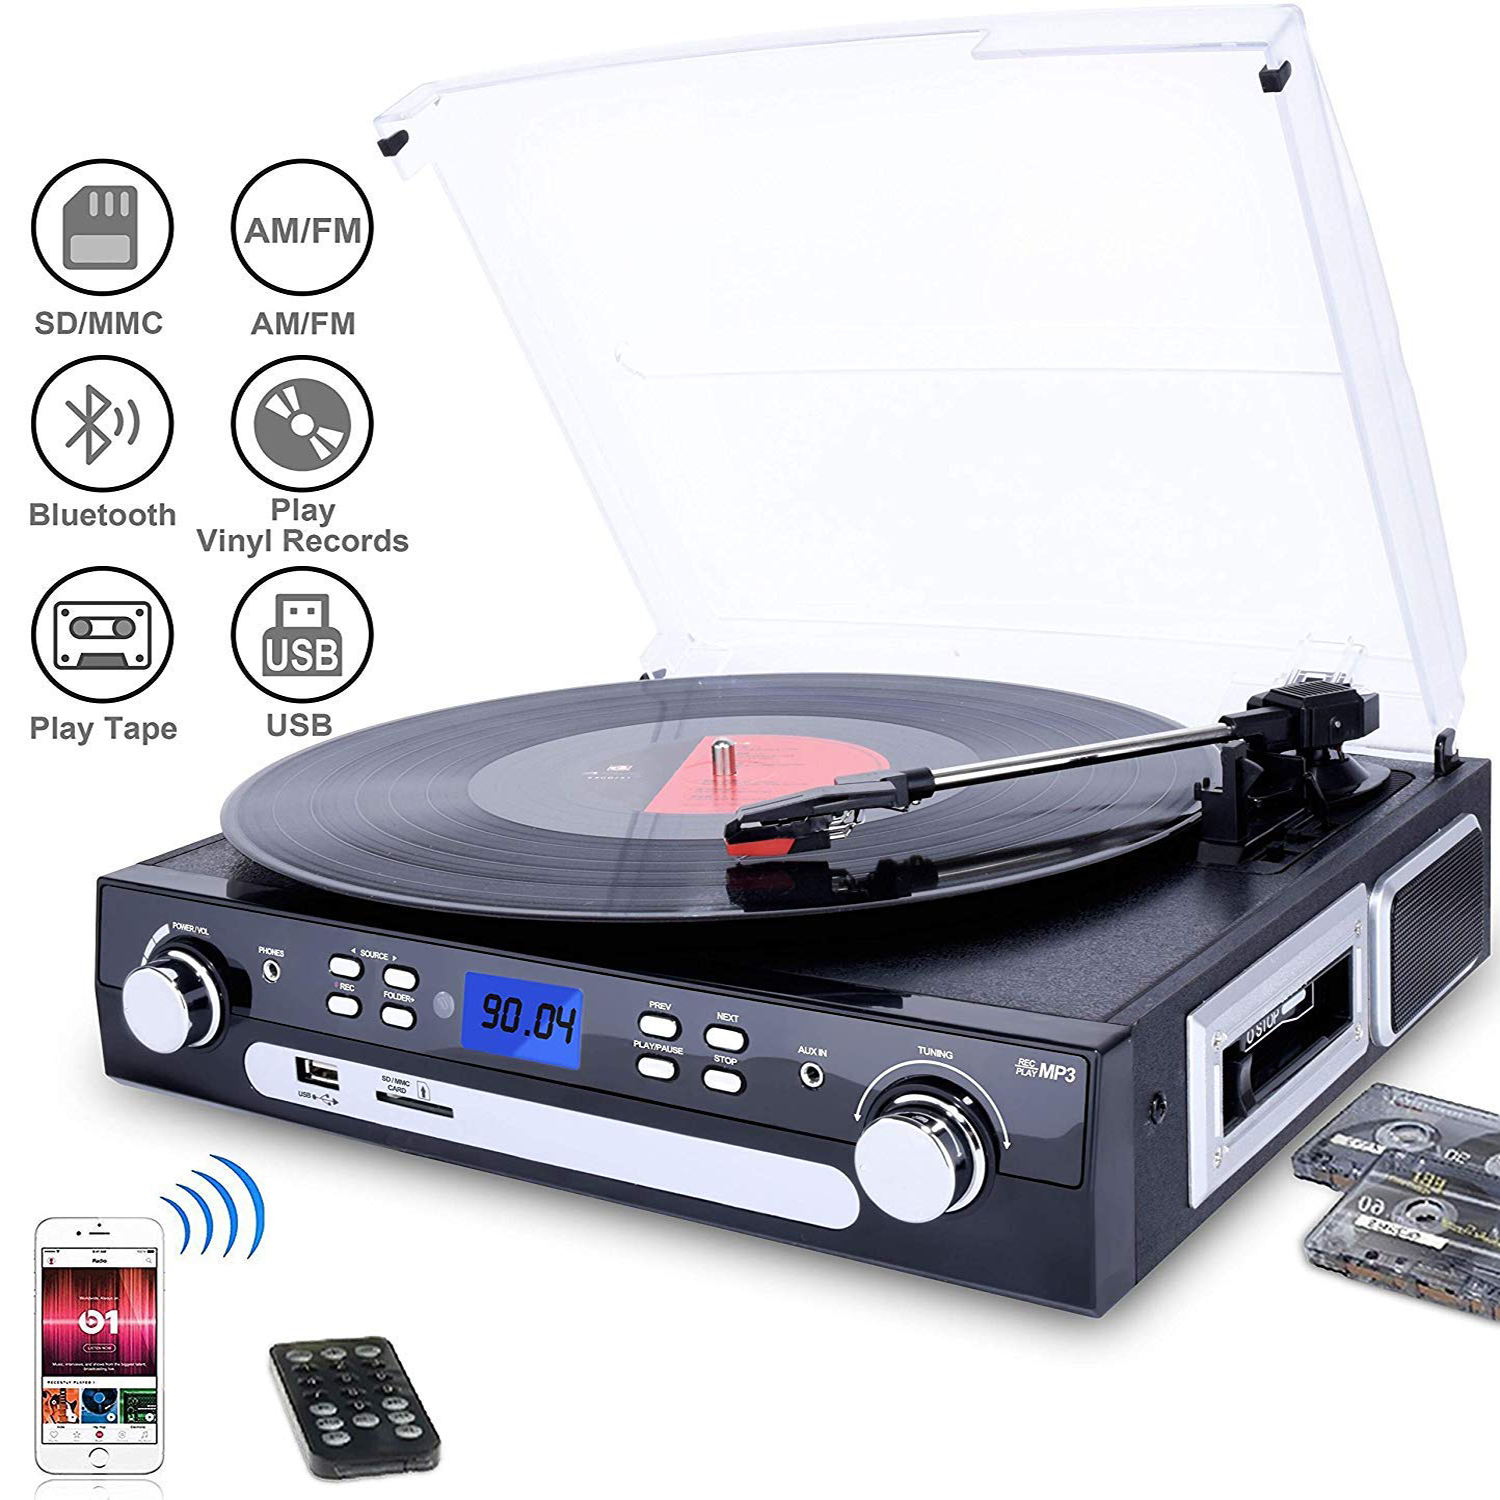 M36 DIGITNOW Vinyl/LP Turntable Record Player, with Bluetooth,AM&FM Radio, Cassette Tape, Aux in, USB/SD Encoding & Playing MP3/ Built-in Stereo Speakers, 3.5mm Headphone Jack,Remote and LCD